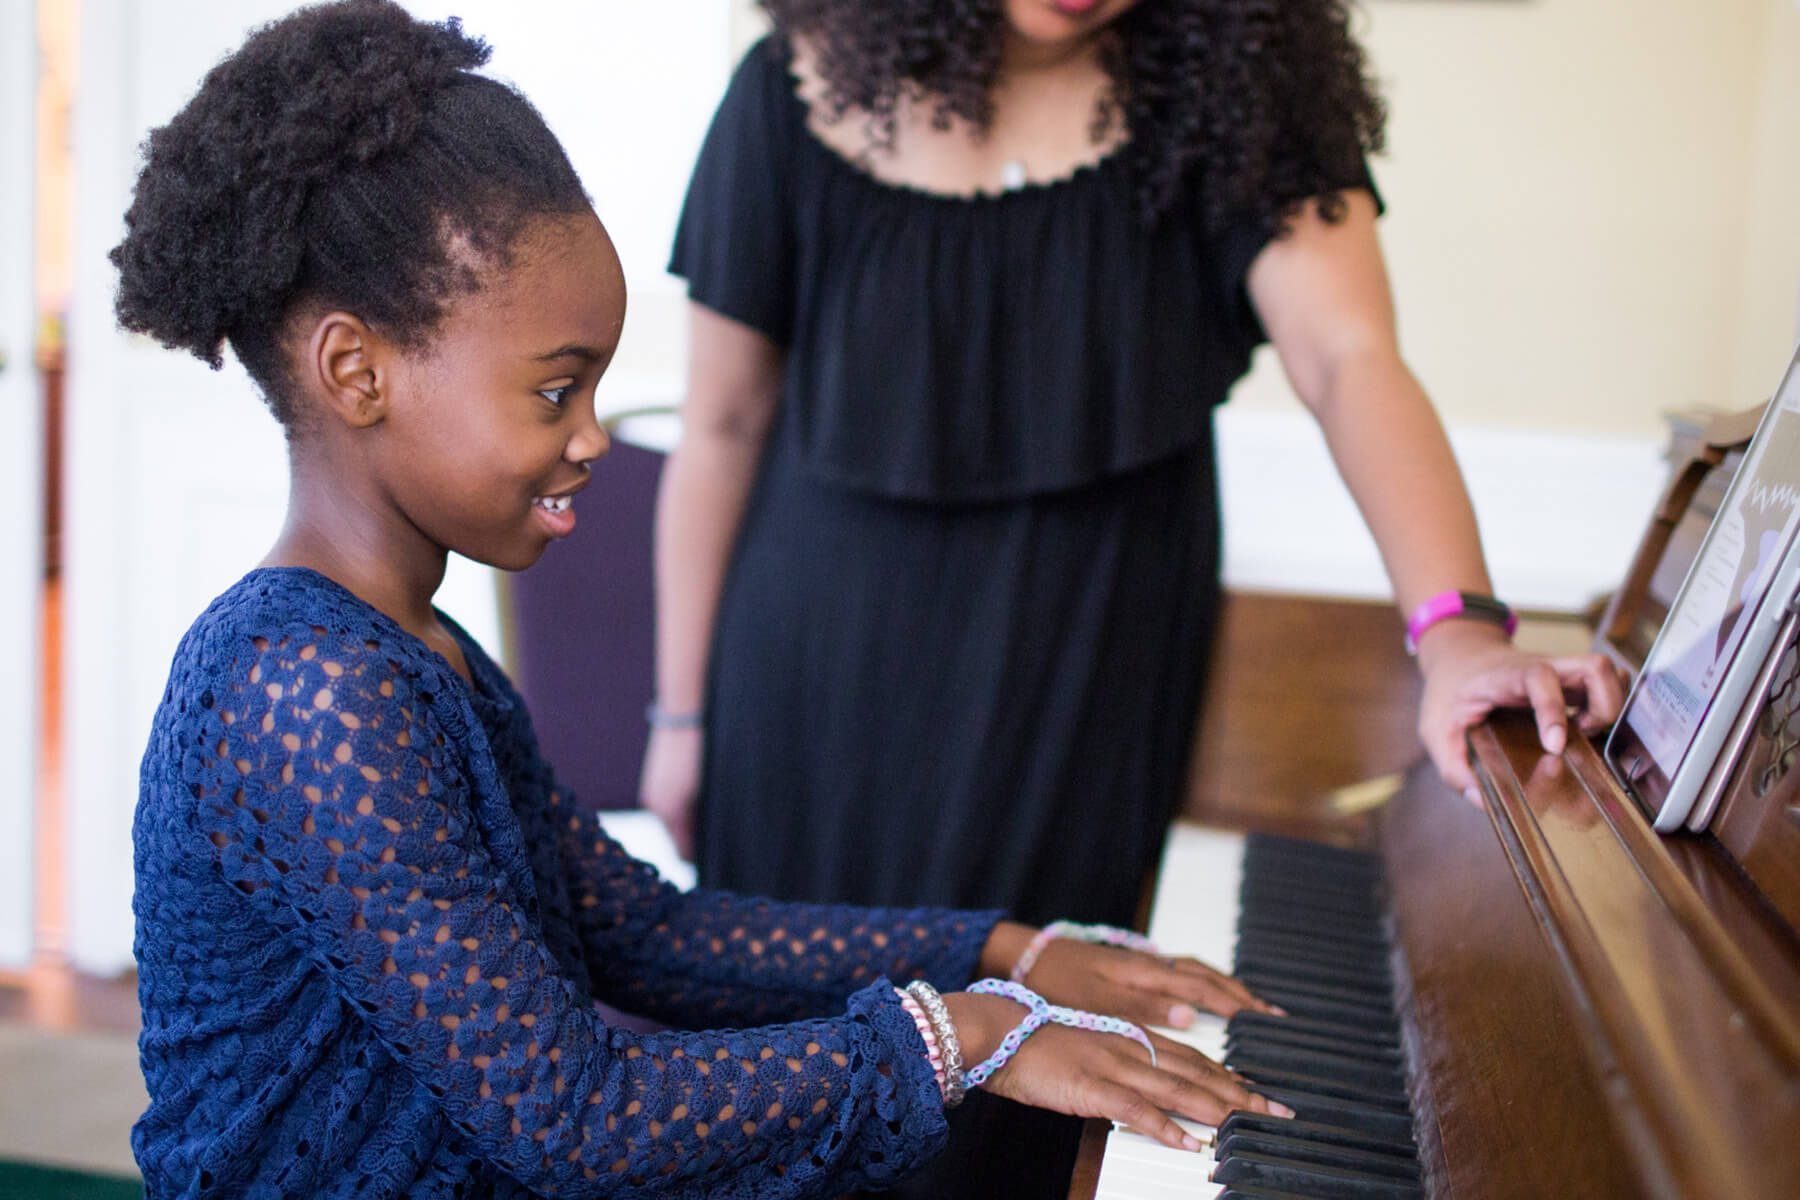 Student playing piano with instructor.